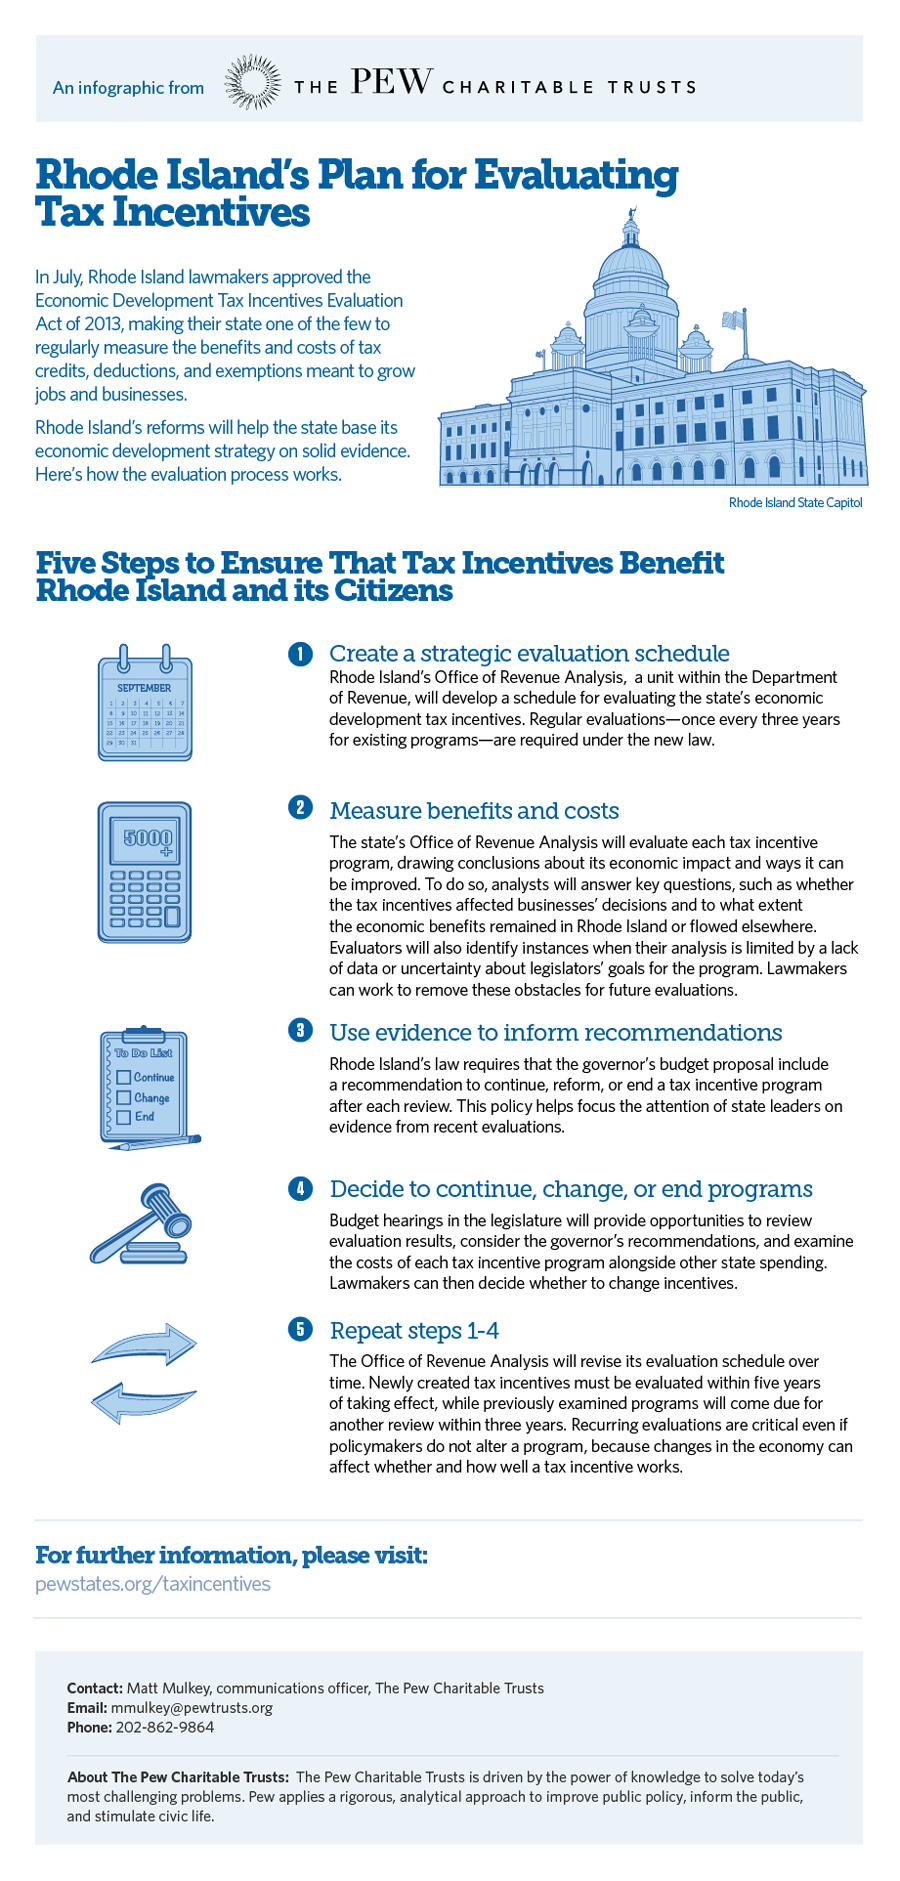 Rhode Island's Plan for Evaluating Tax Incentives